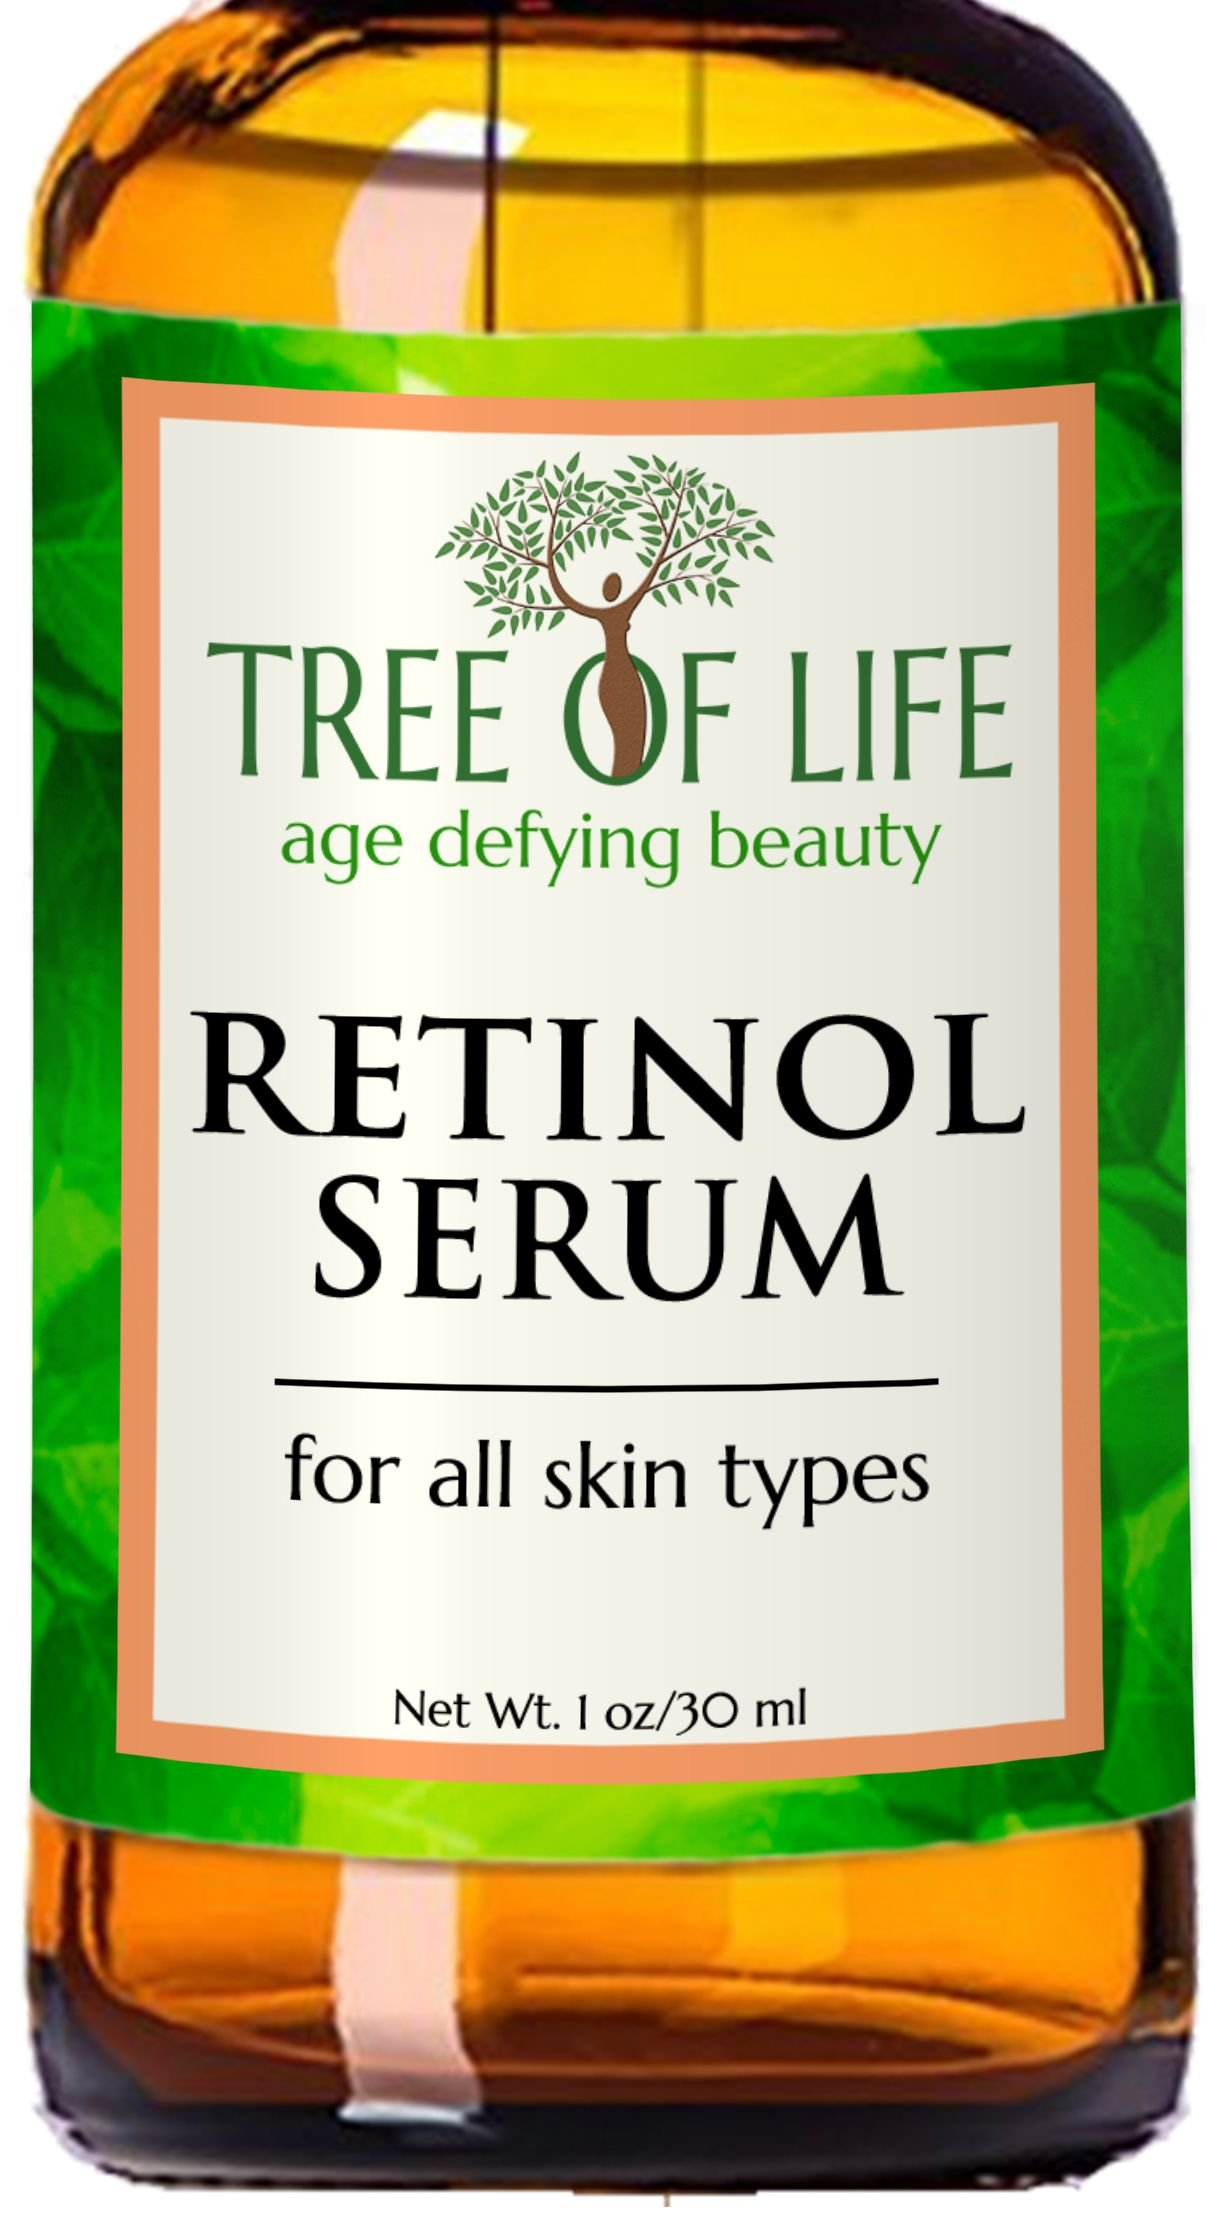 ToLB Retinol Serum - 72% ORGANIC - Clinical Strength Retinol Serum Face Moisturizer Cream for Anti Aging, Anti Wrinkle, Acne - Organic and Natural Ingredients - 1 oz by Flawless. Younger. Perfect. (Image #1)